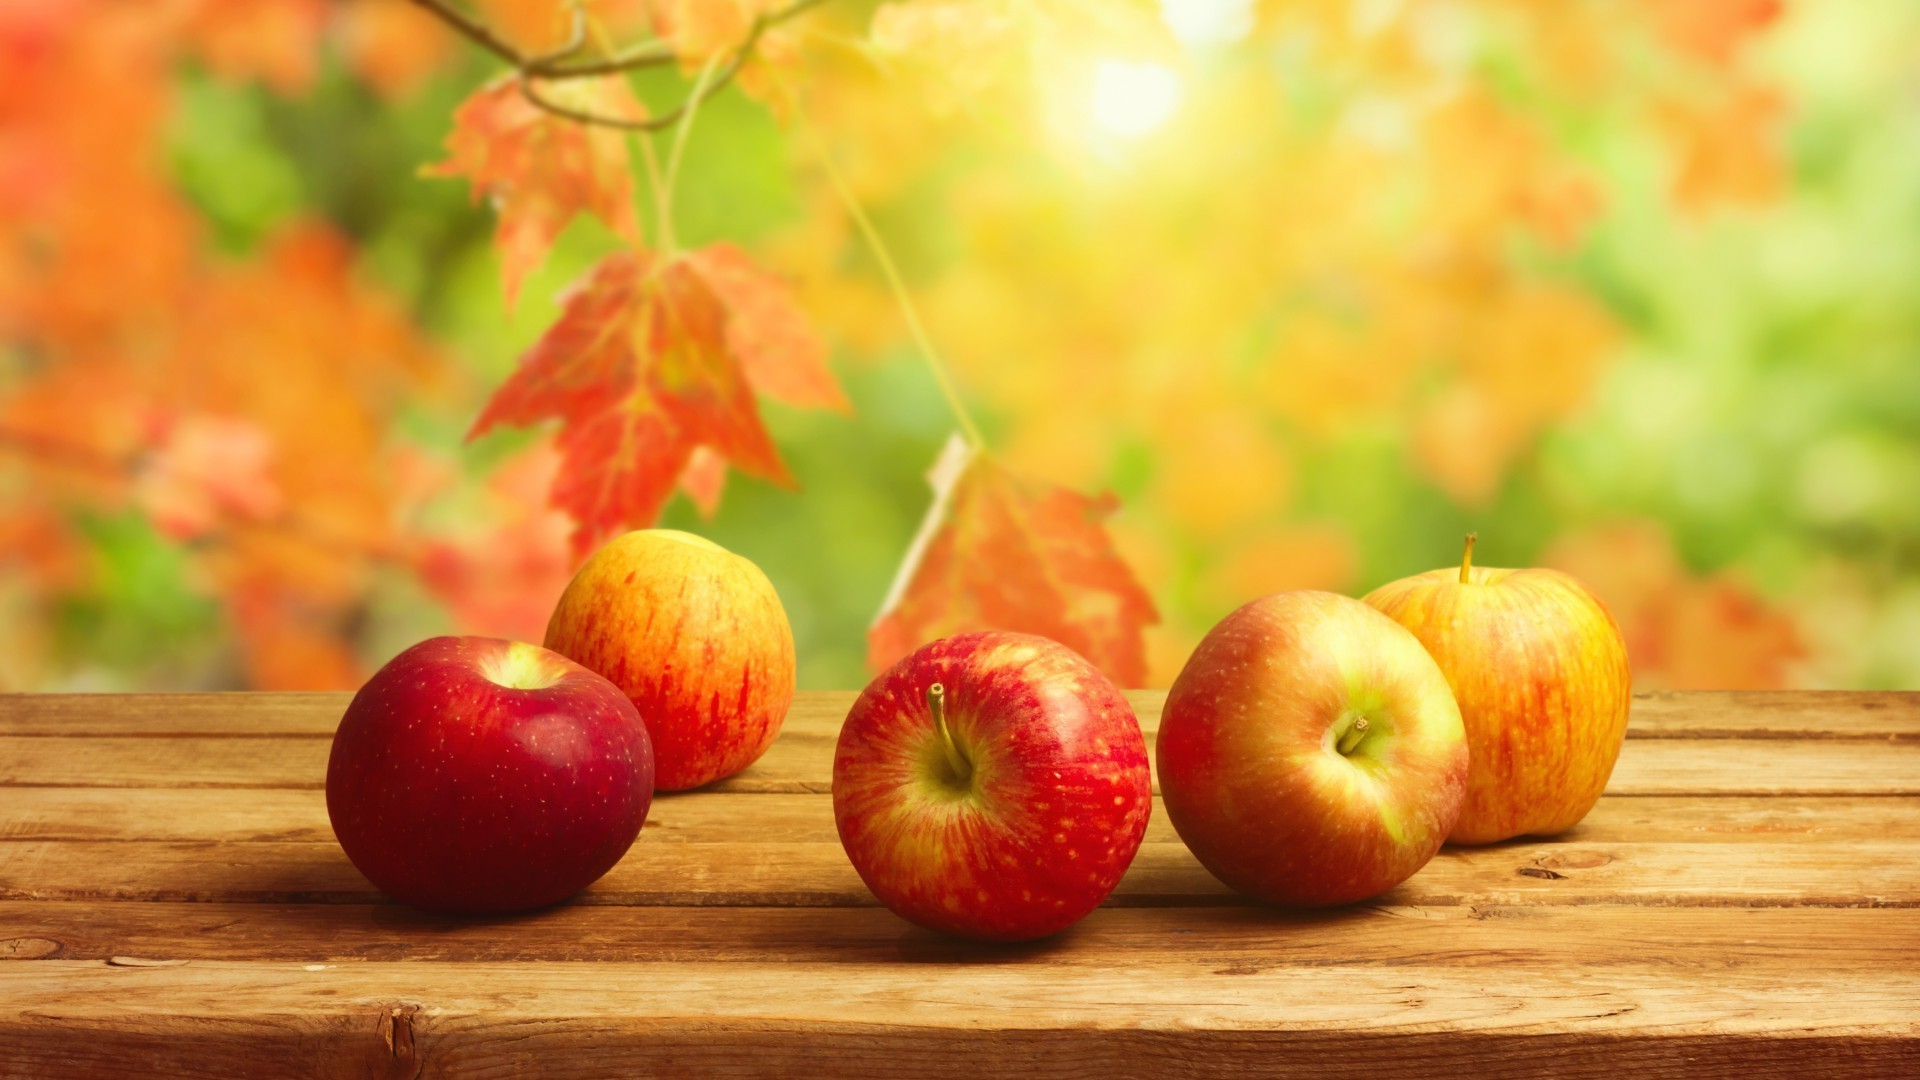 Fall Color Wallpaper For Desktop Apples Android Wallpapers For Free